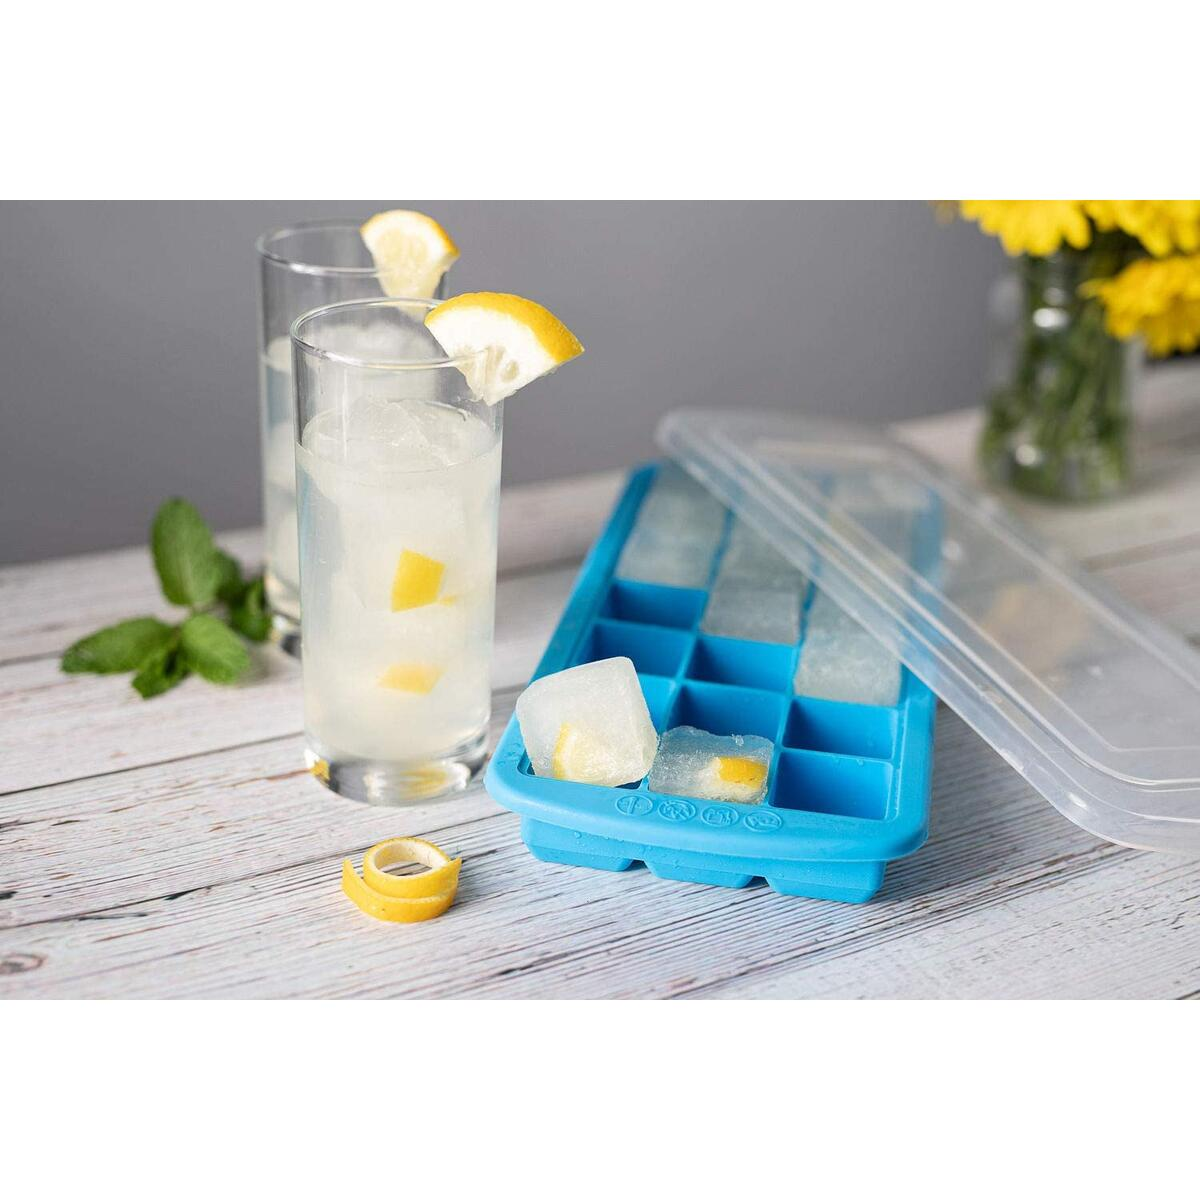 Silicone Small 1.3 Inch Ice Cube Trays with Easy Release, Stackable Lids, Great for Cocktails, Whiskey & Bourbon, BPA Free, Set of Two Makes 42 Total